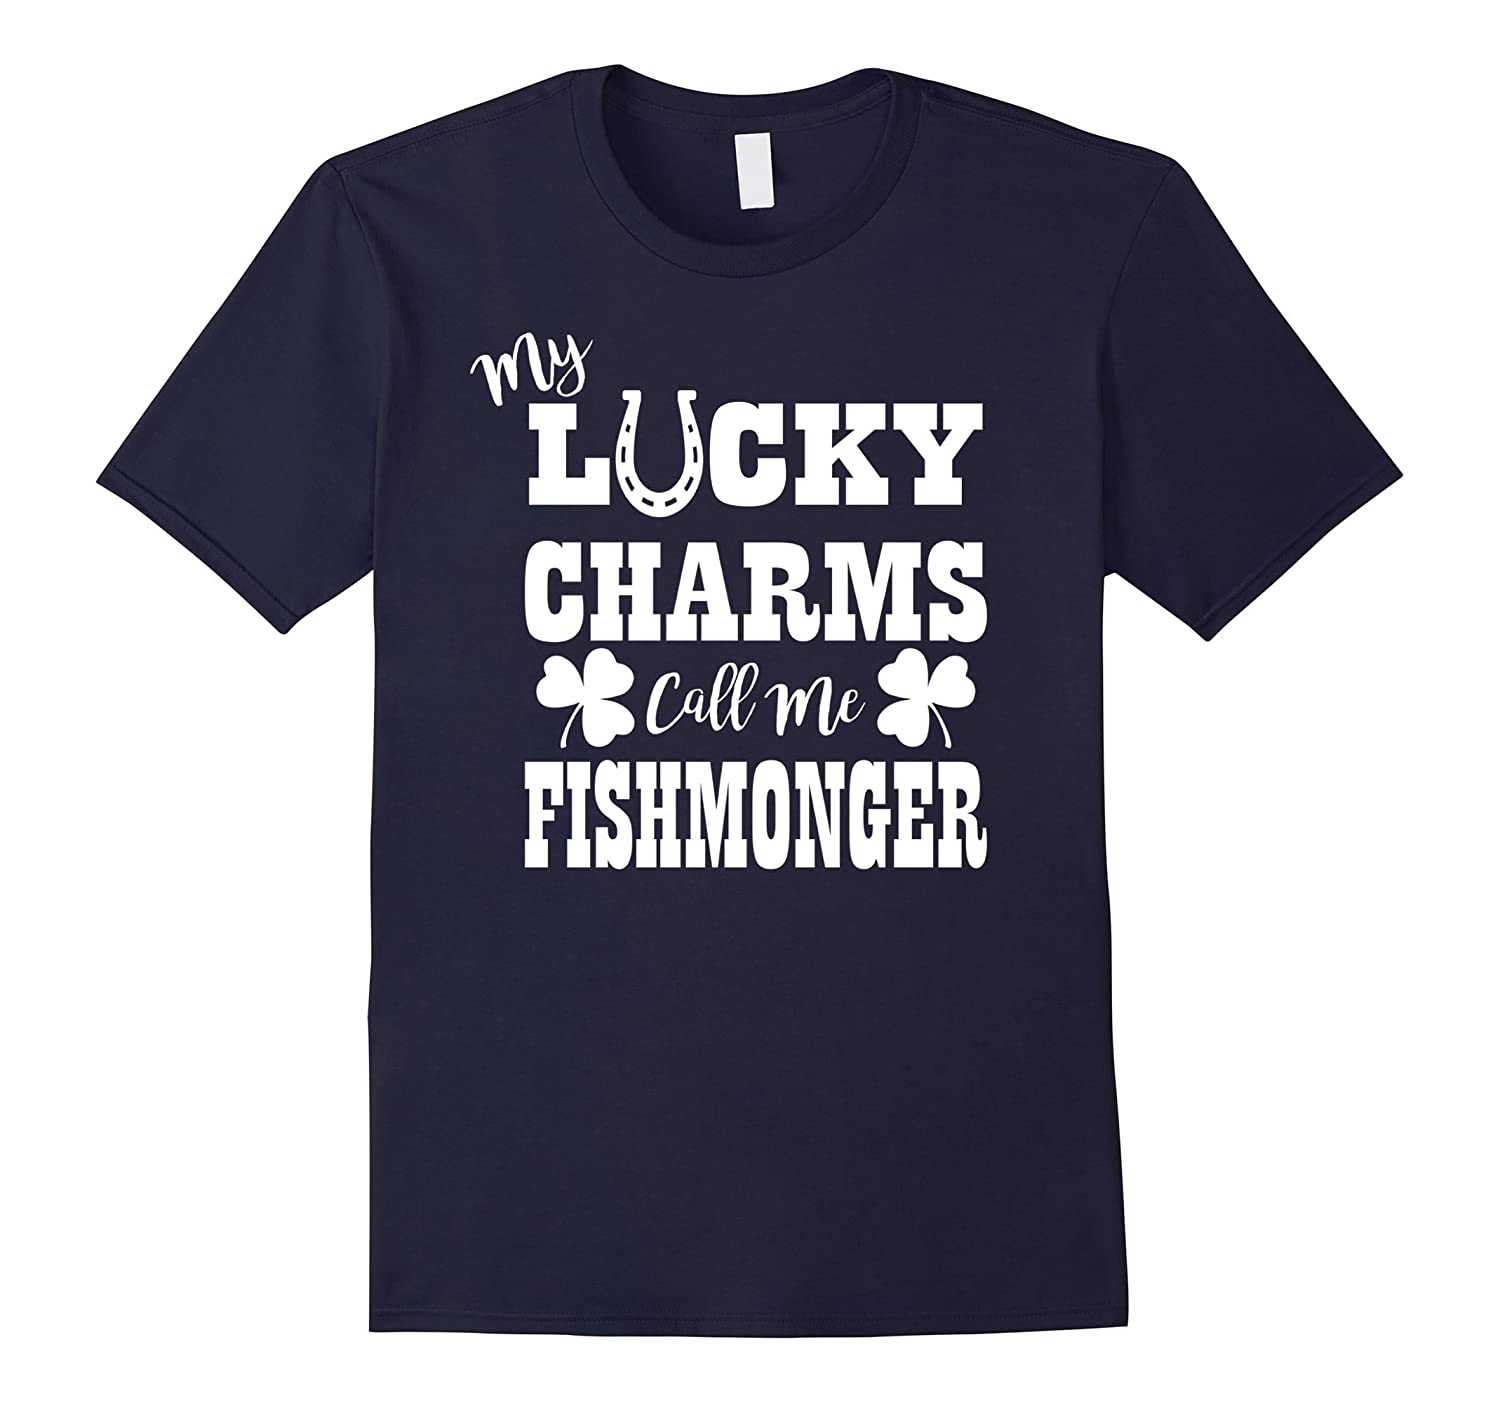 My Lucky Charms Call Me Fishmonger T shirt-TD